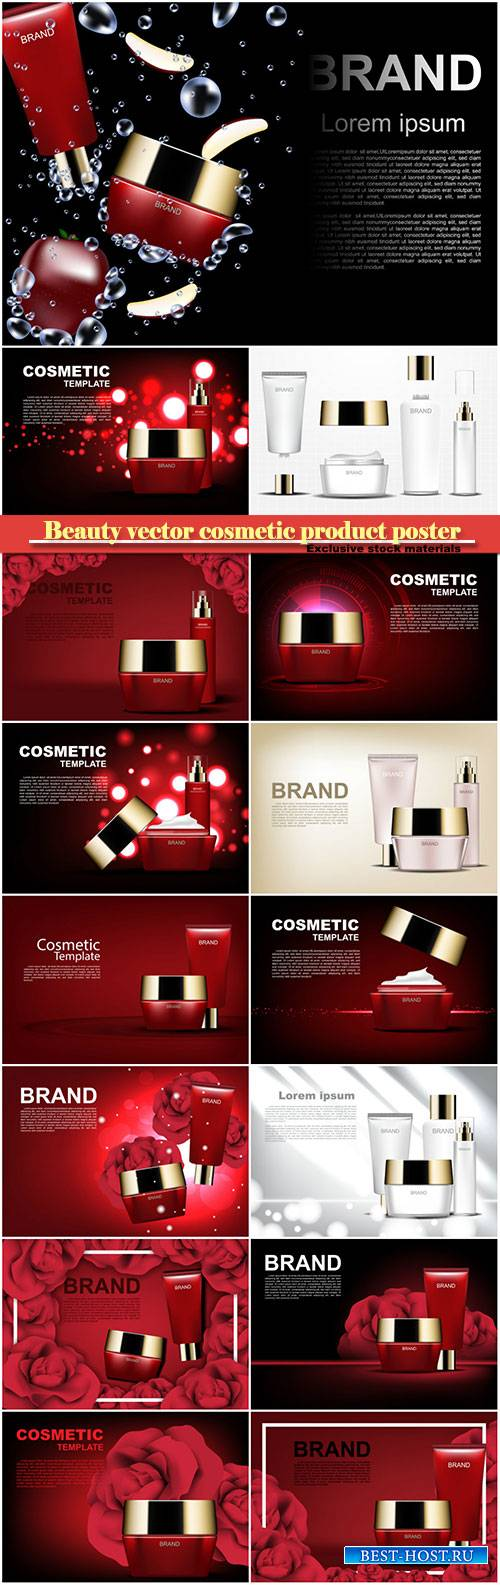 Beauty vector cosmetic product poster # 21